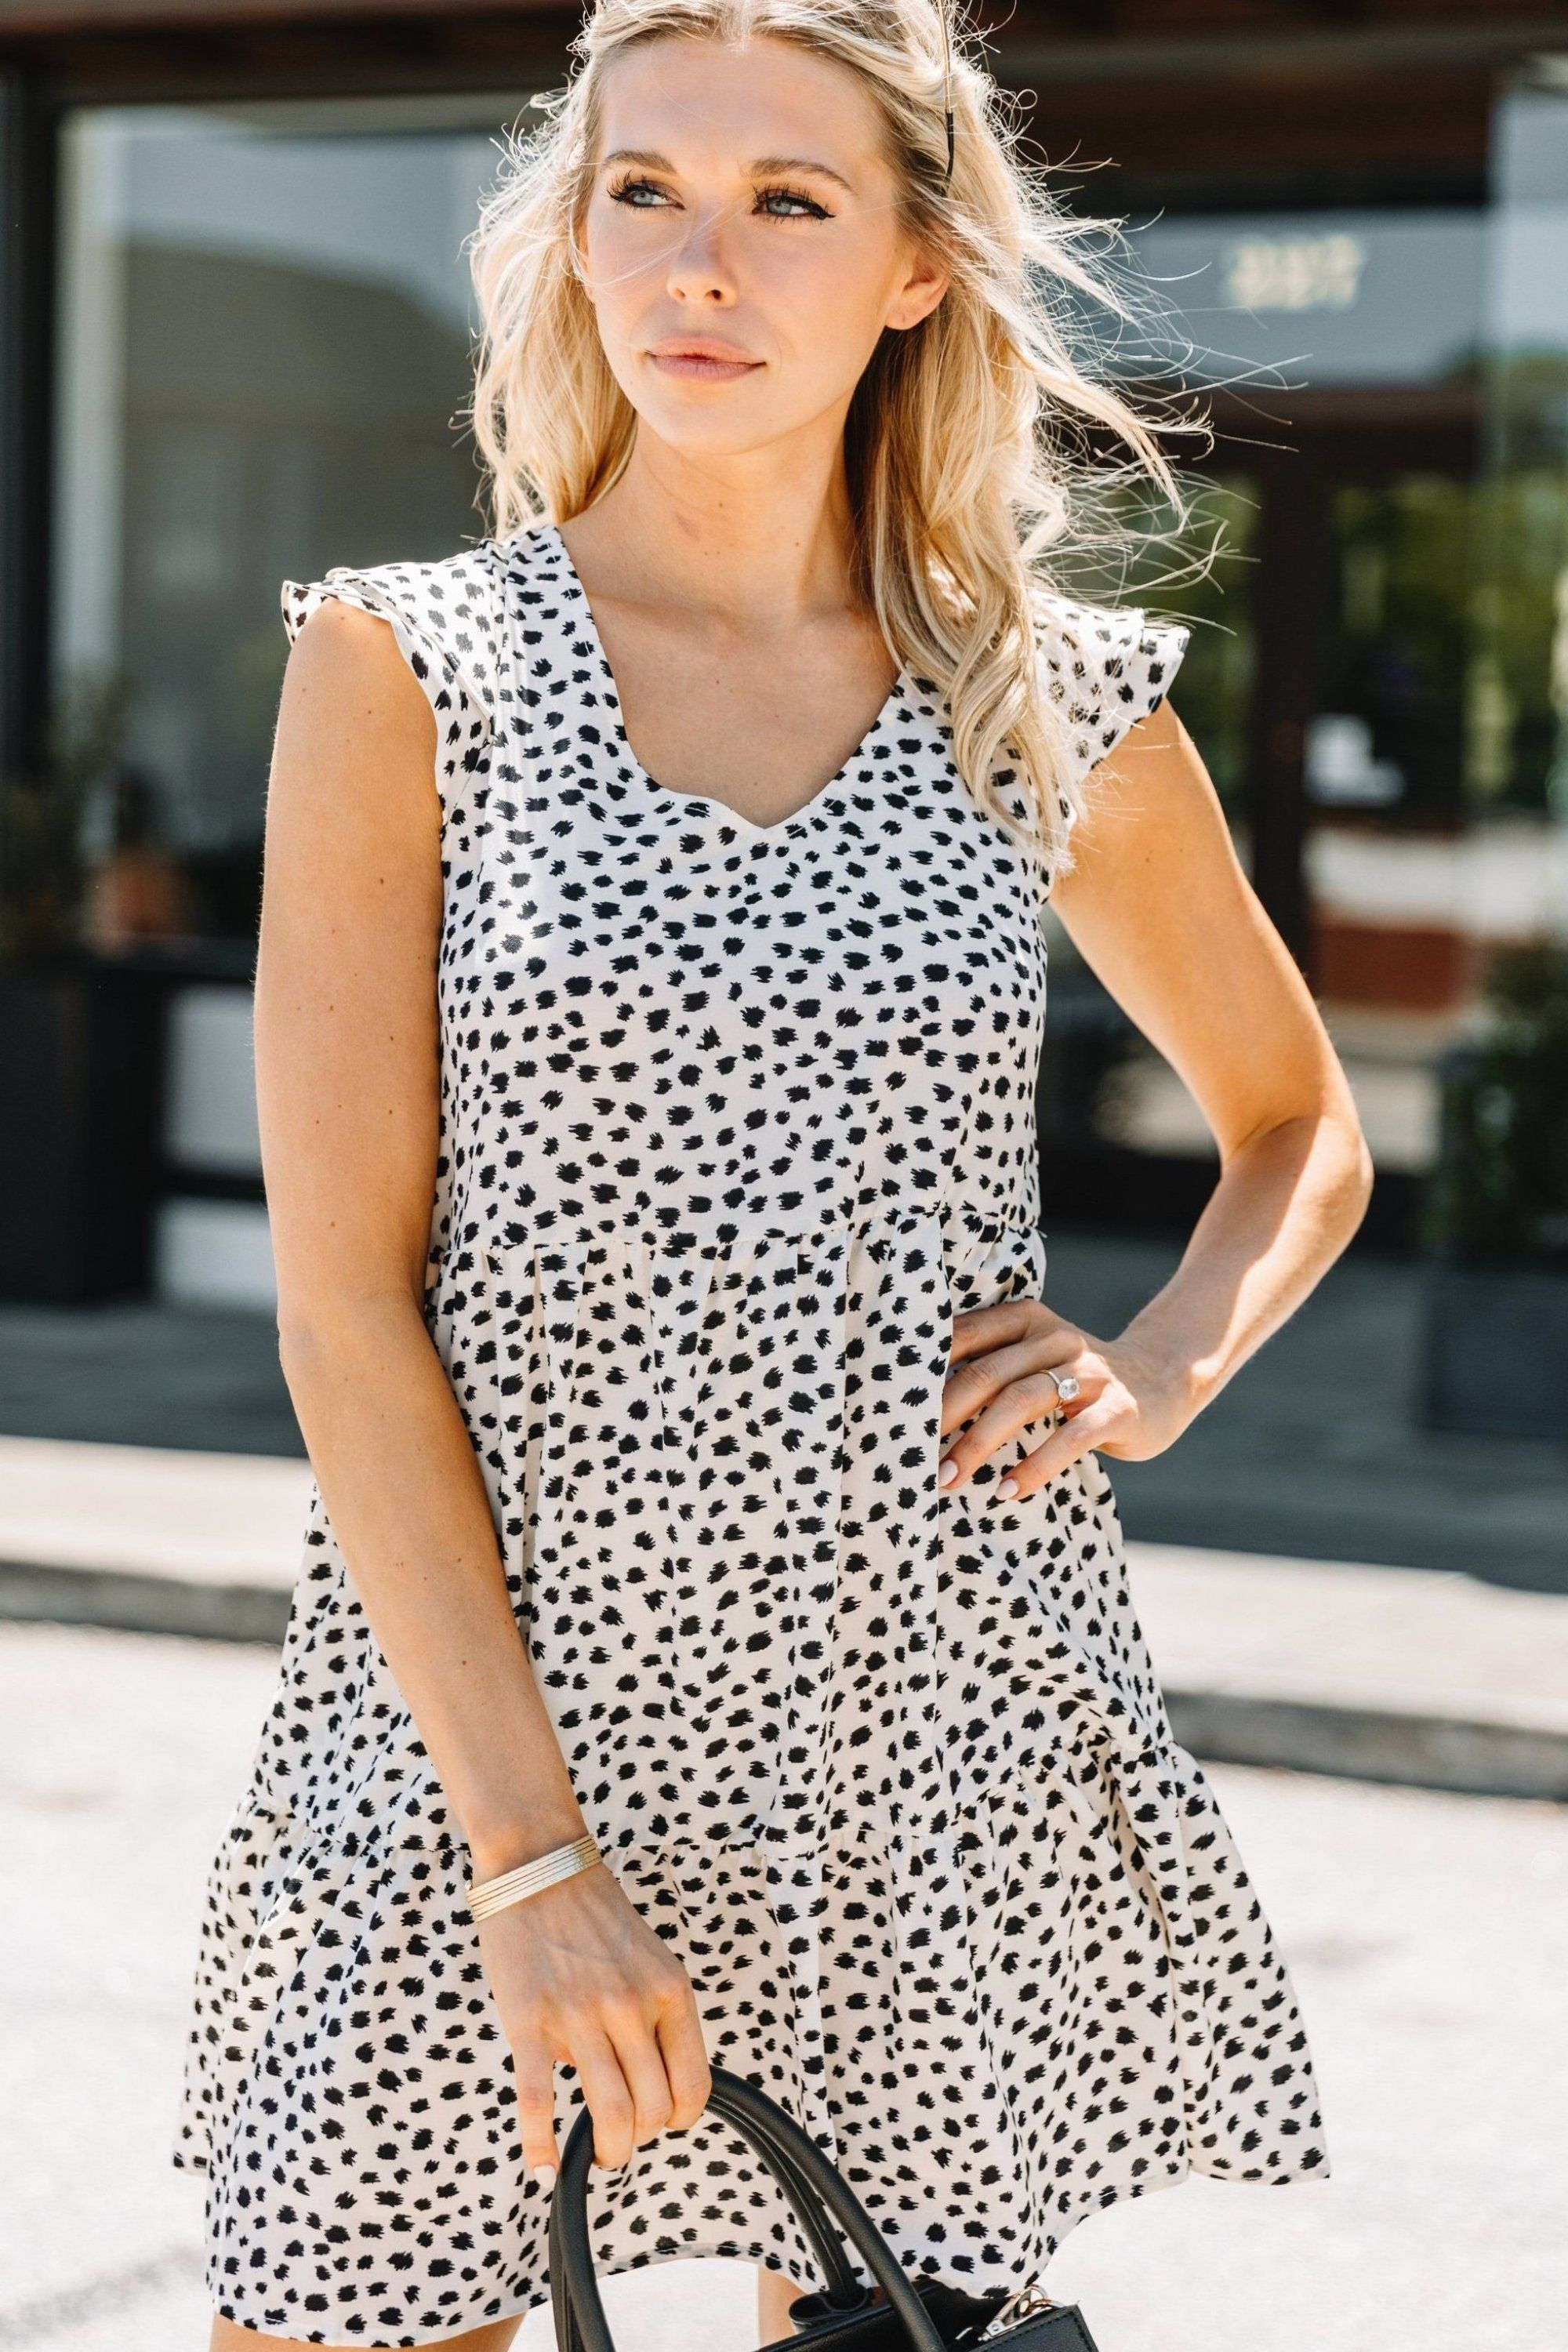 This Is The Way Ivory White Leopard Dress Leopard Dress Leopard Print Dress White Leopard [ 3000 x 2000 Pixel ]